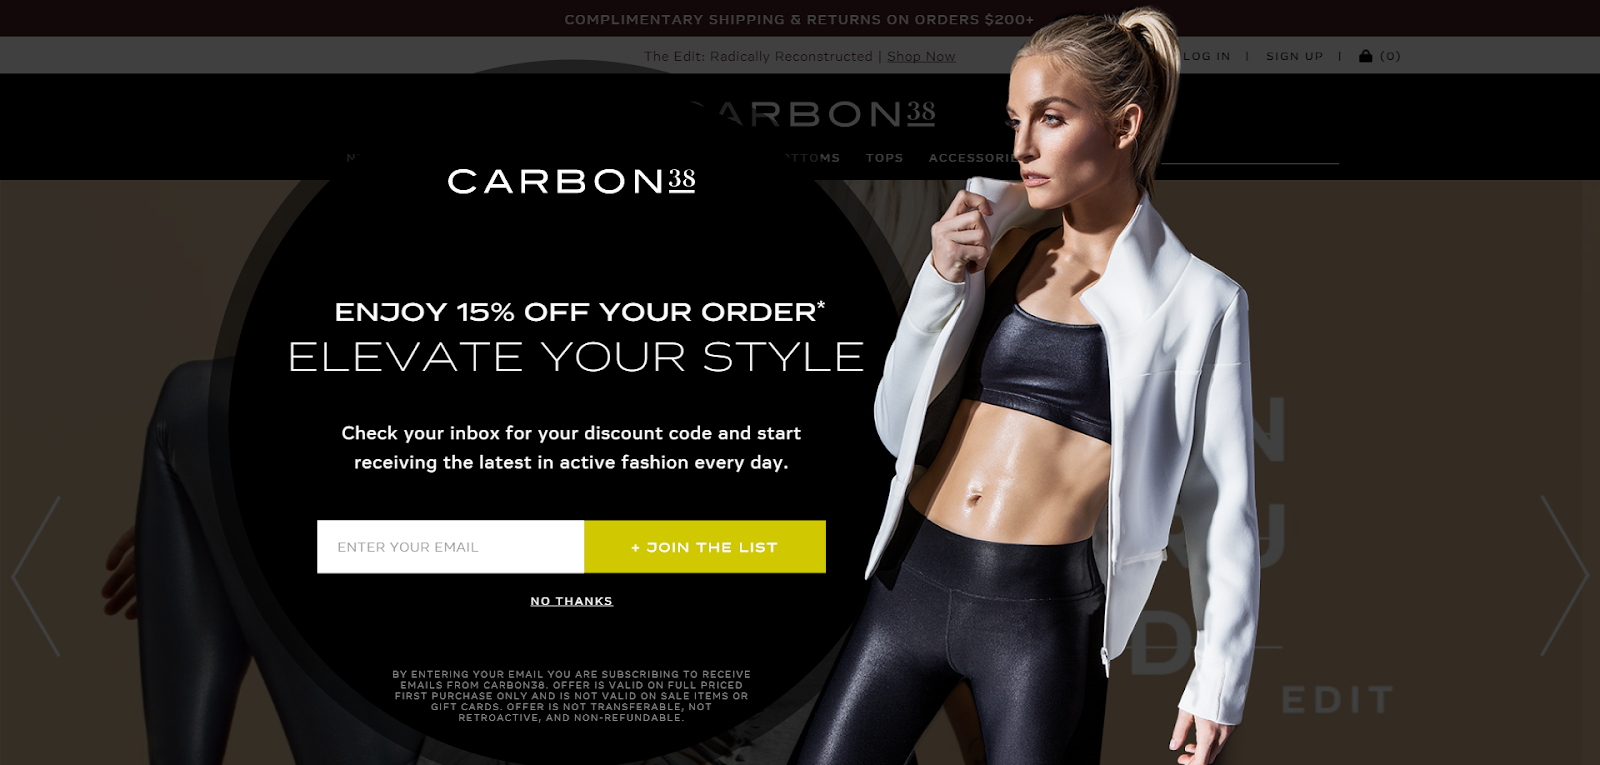 Carbon38's Shopify email pop-ups